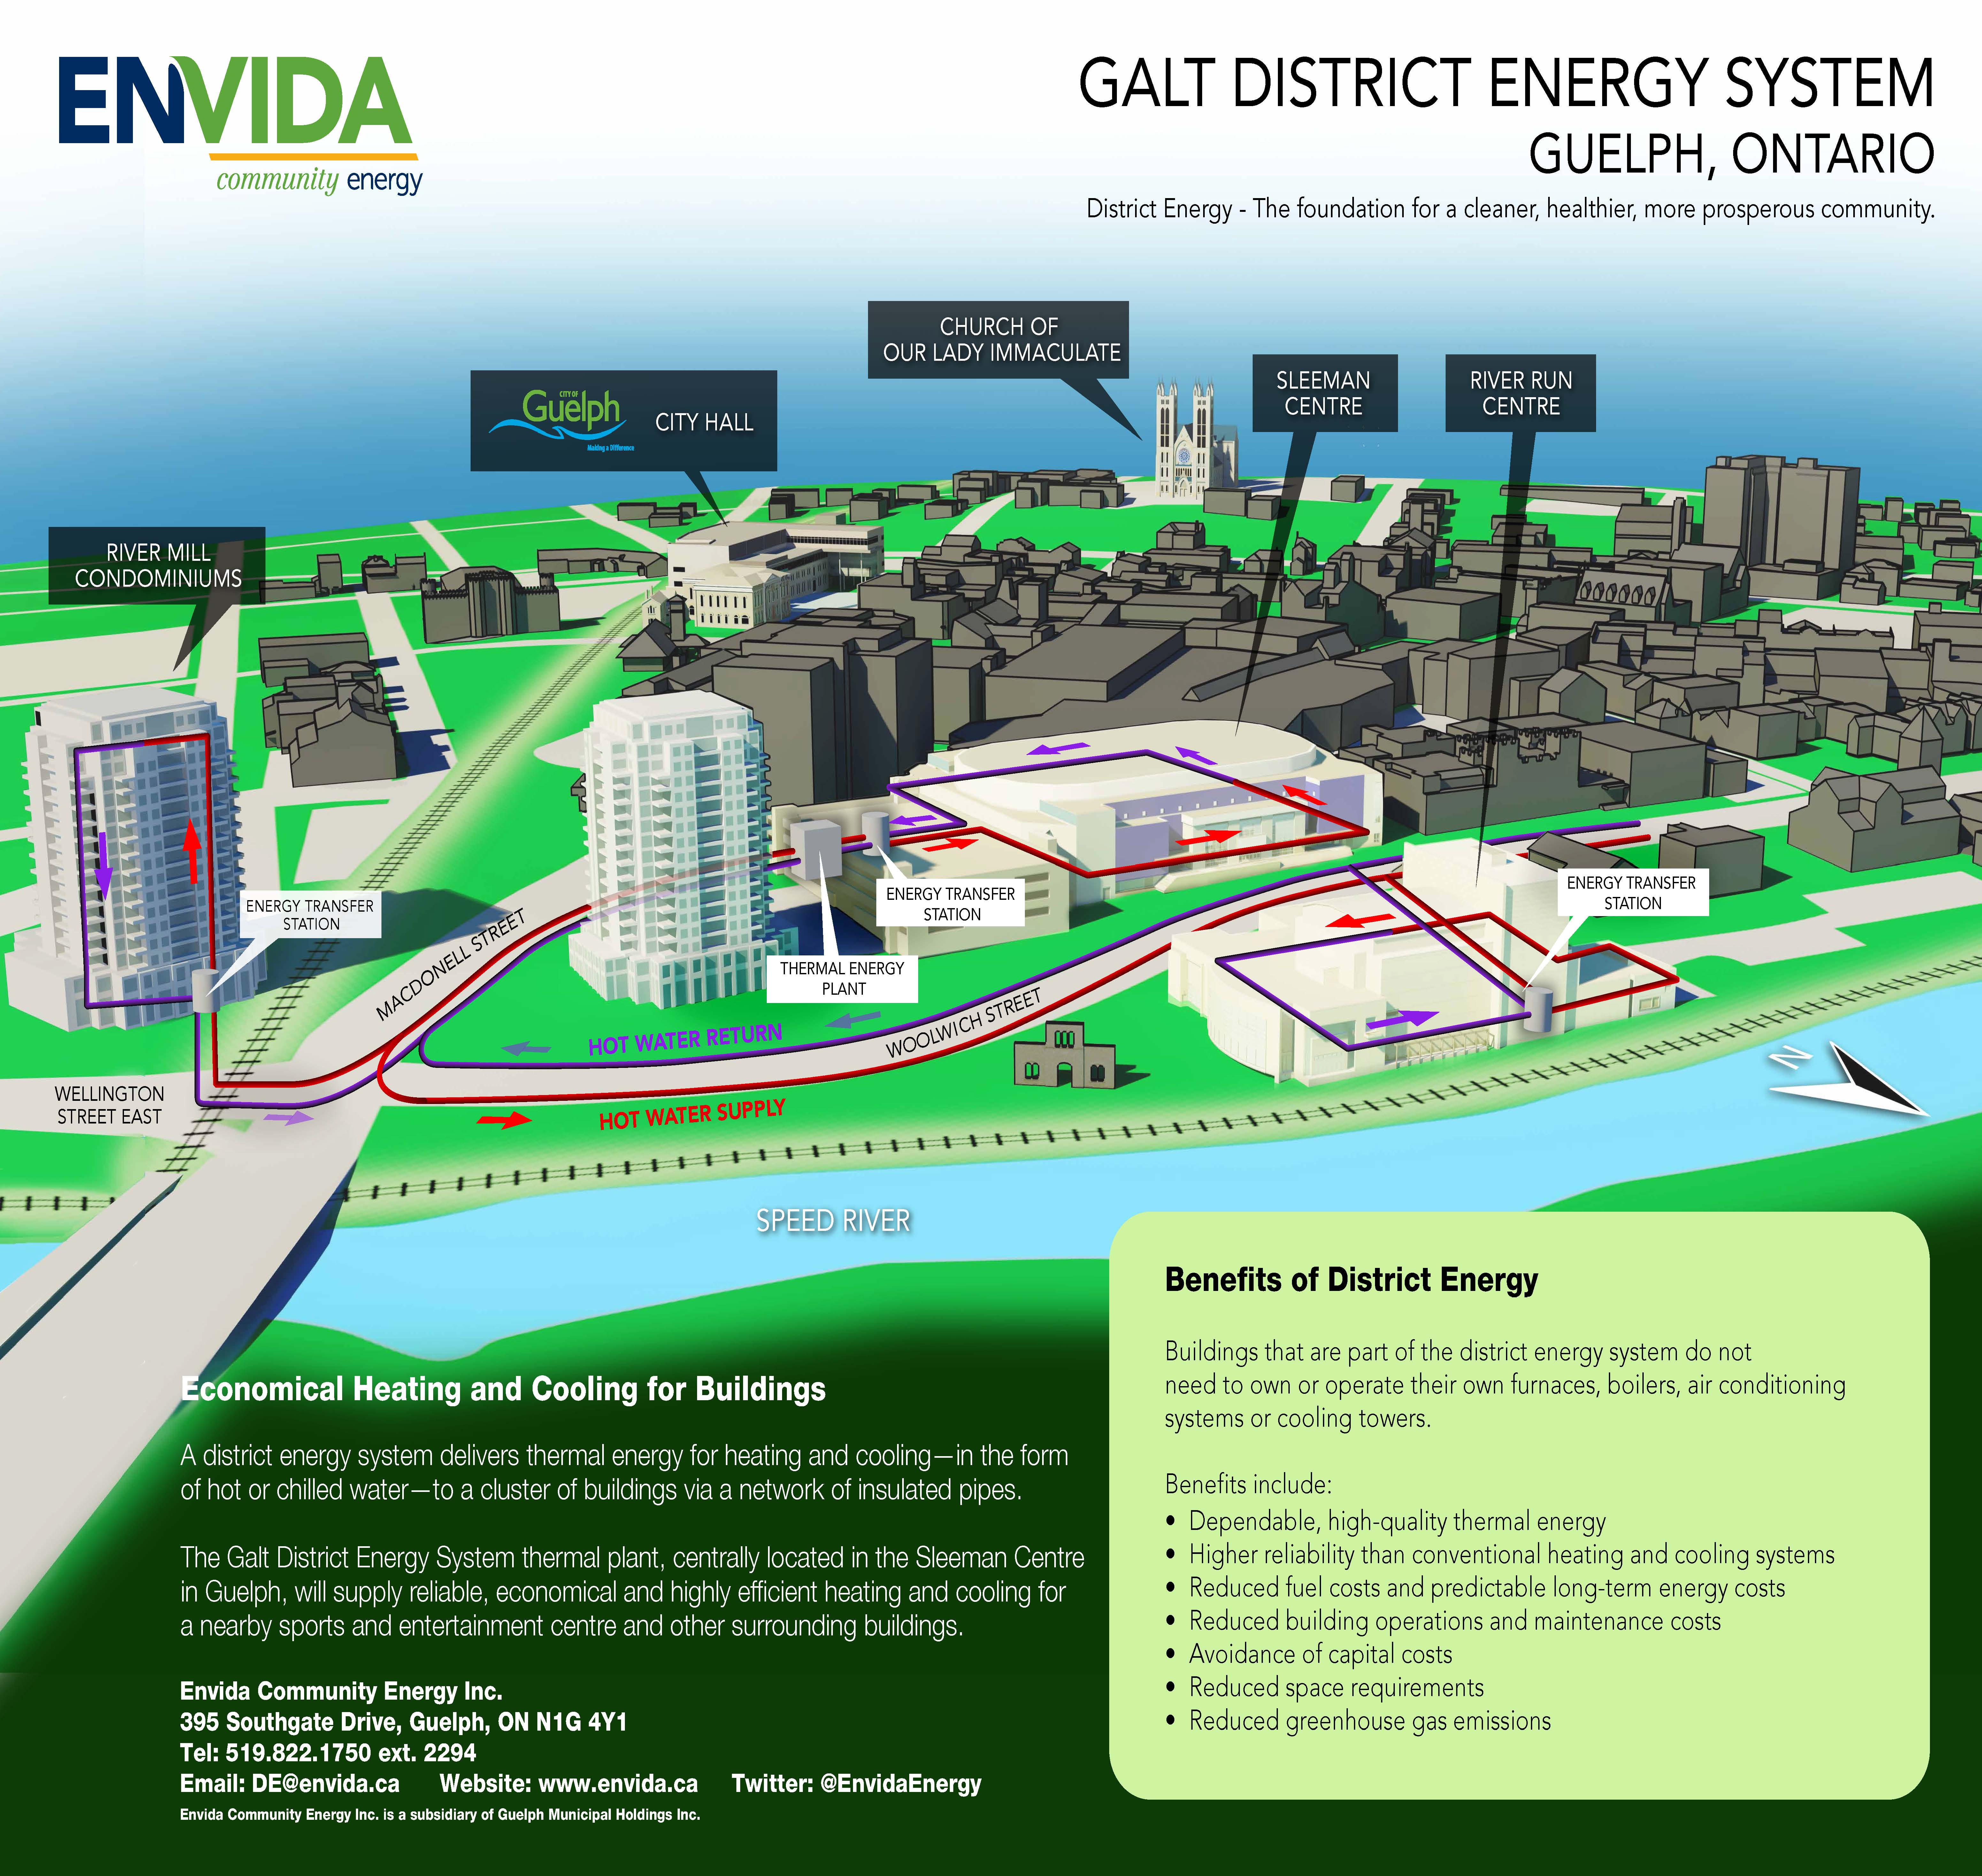 Galt_District_Energy_System_Infographic_-_FINAL_-_A